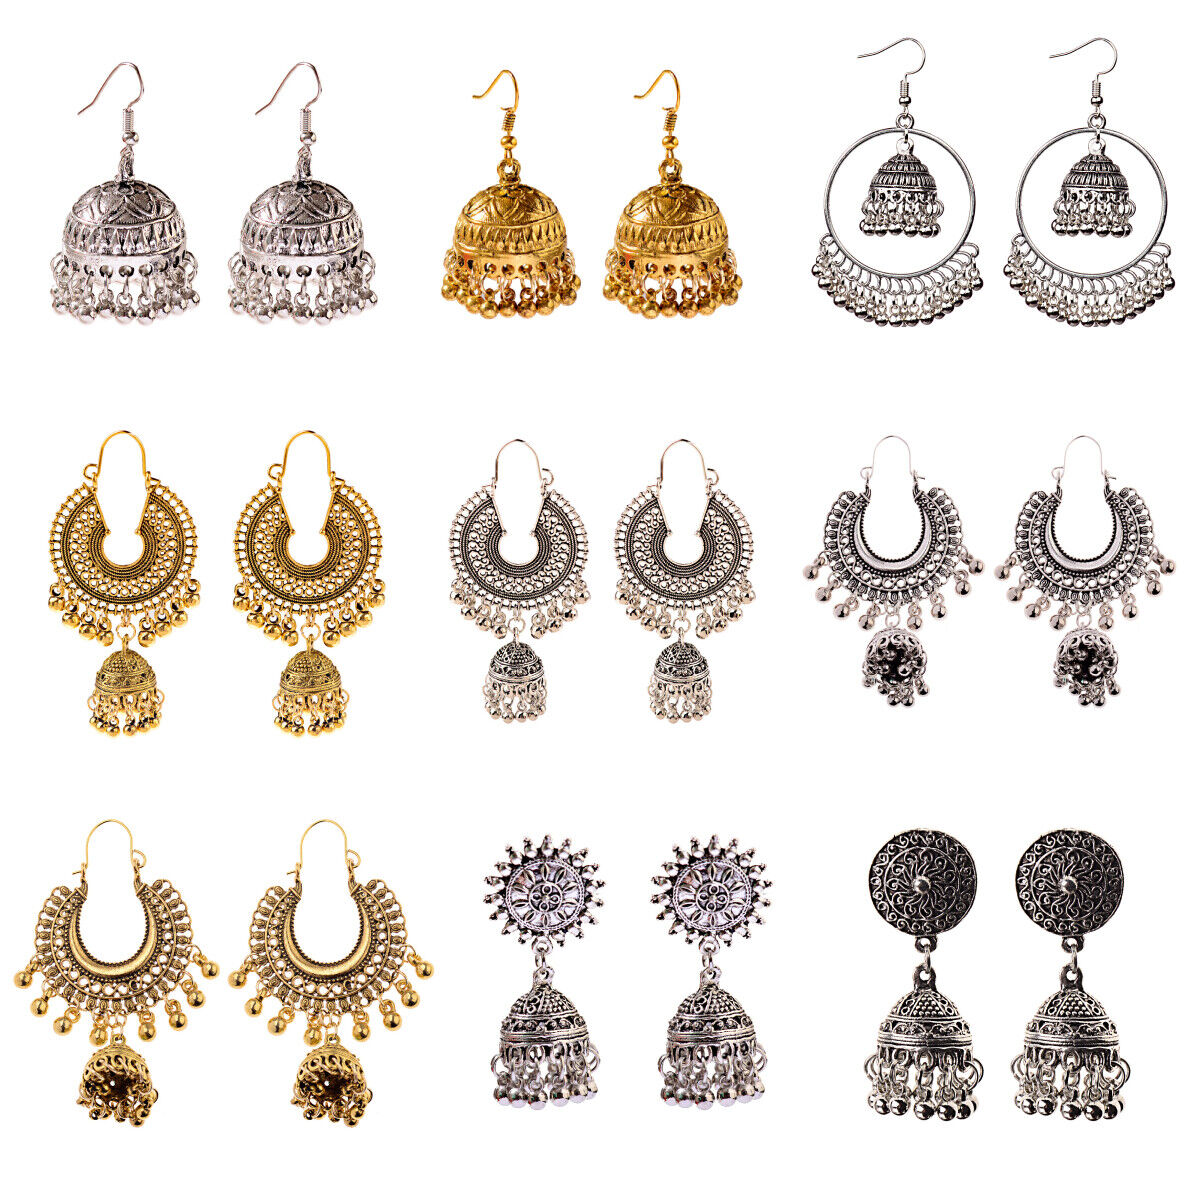 Indian Jhumka Traditional Earrings Gold Silver Jewelry for W